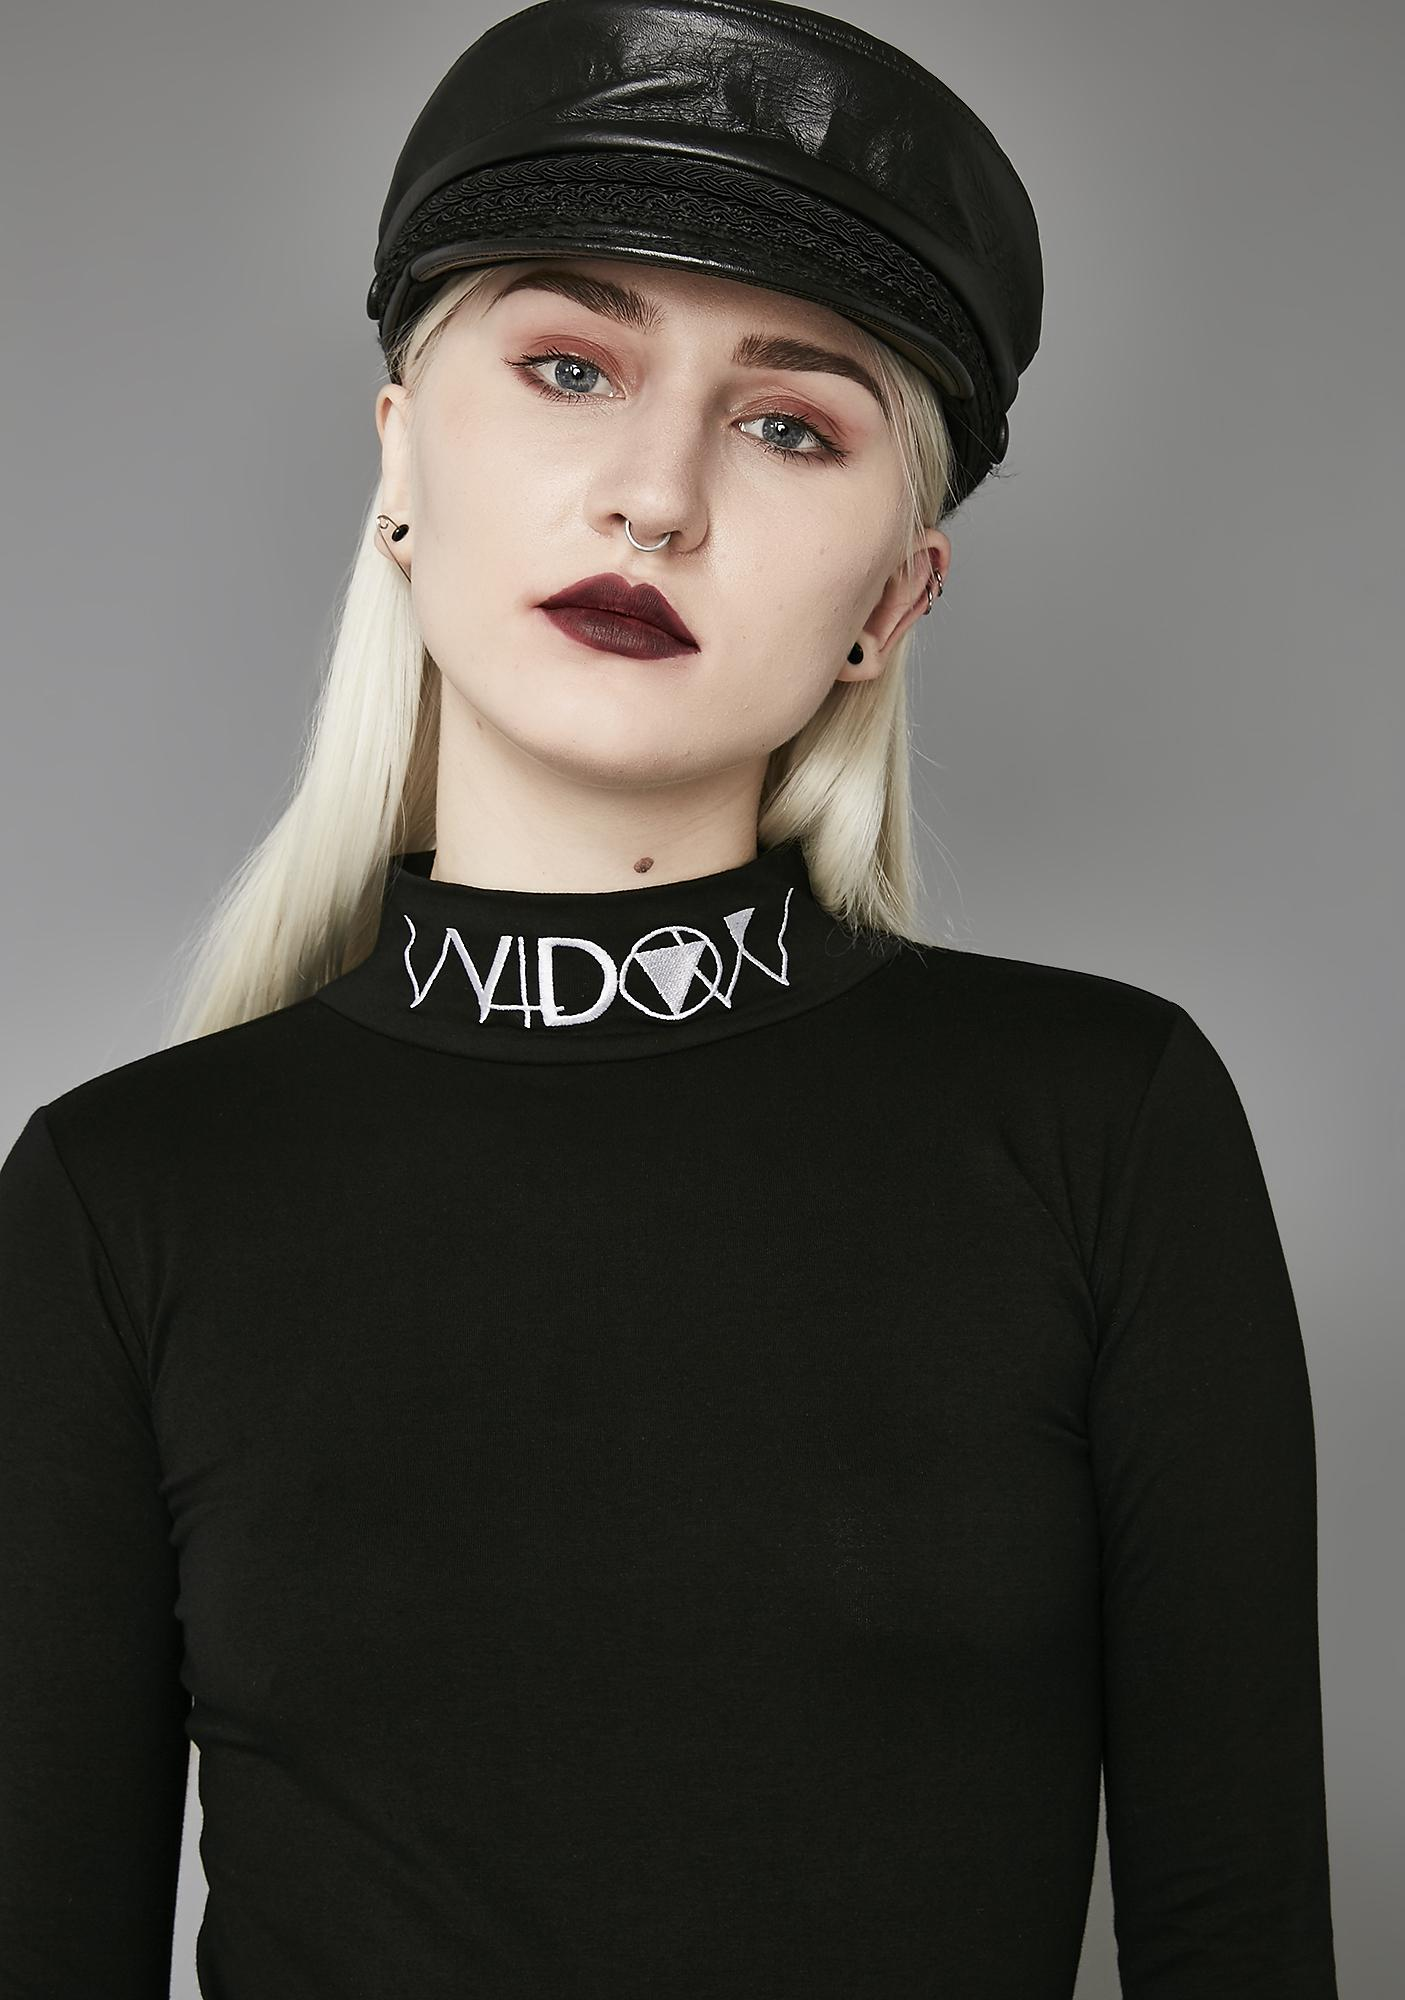 Widow Widow Long Sleeve Mock Neck